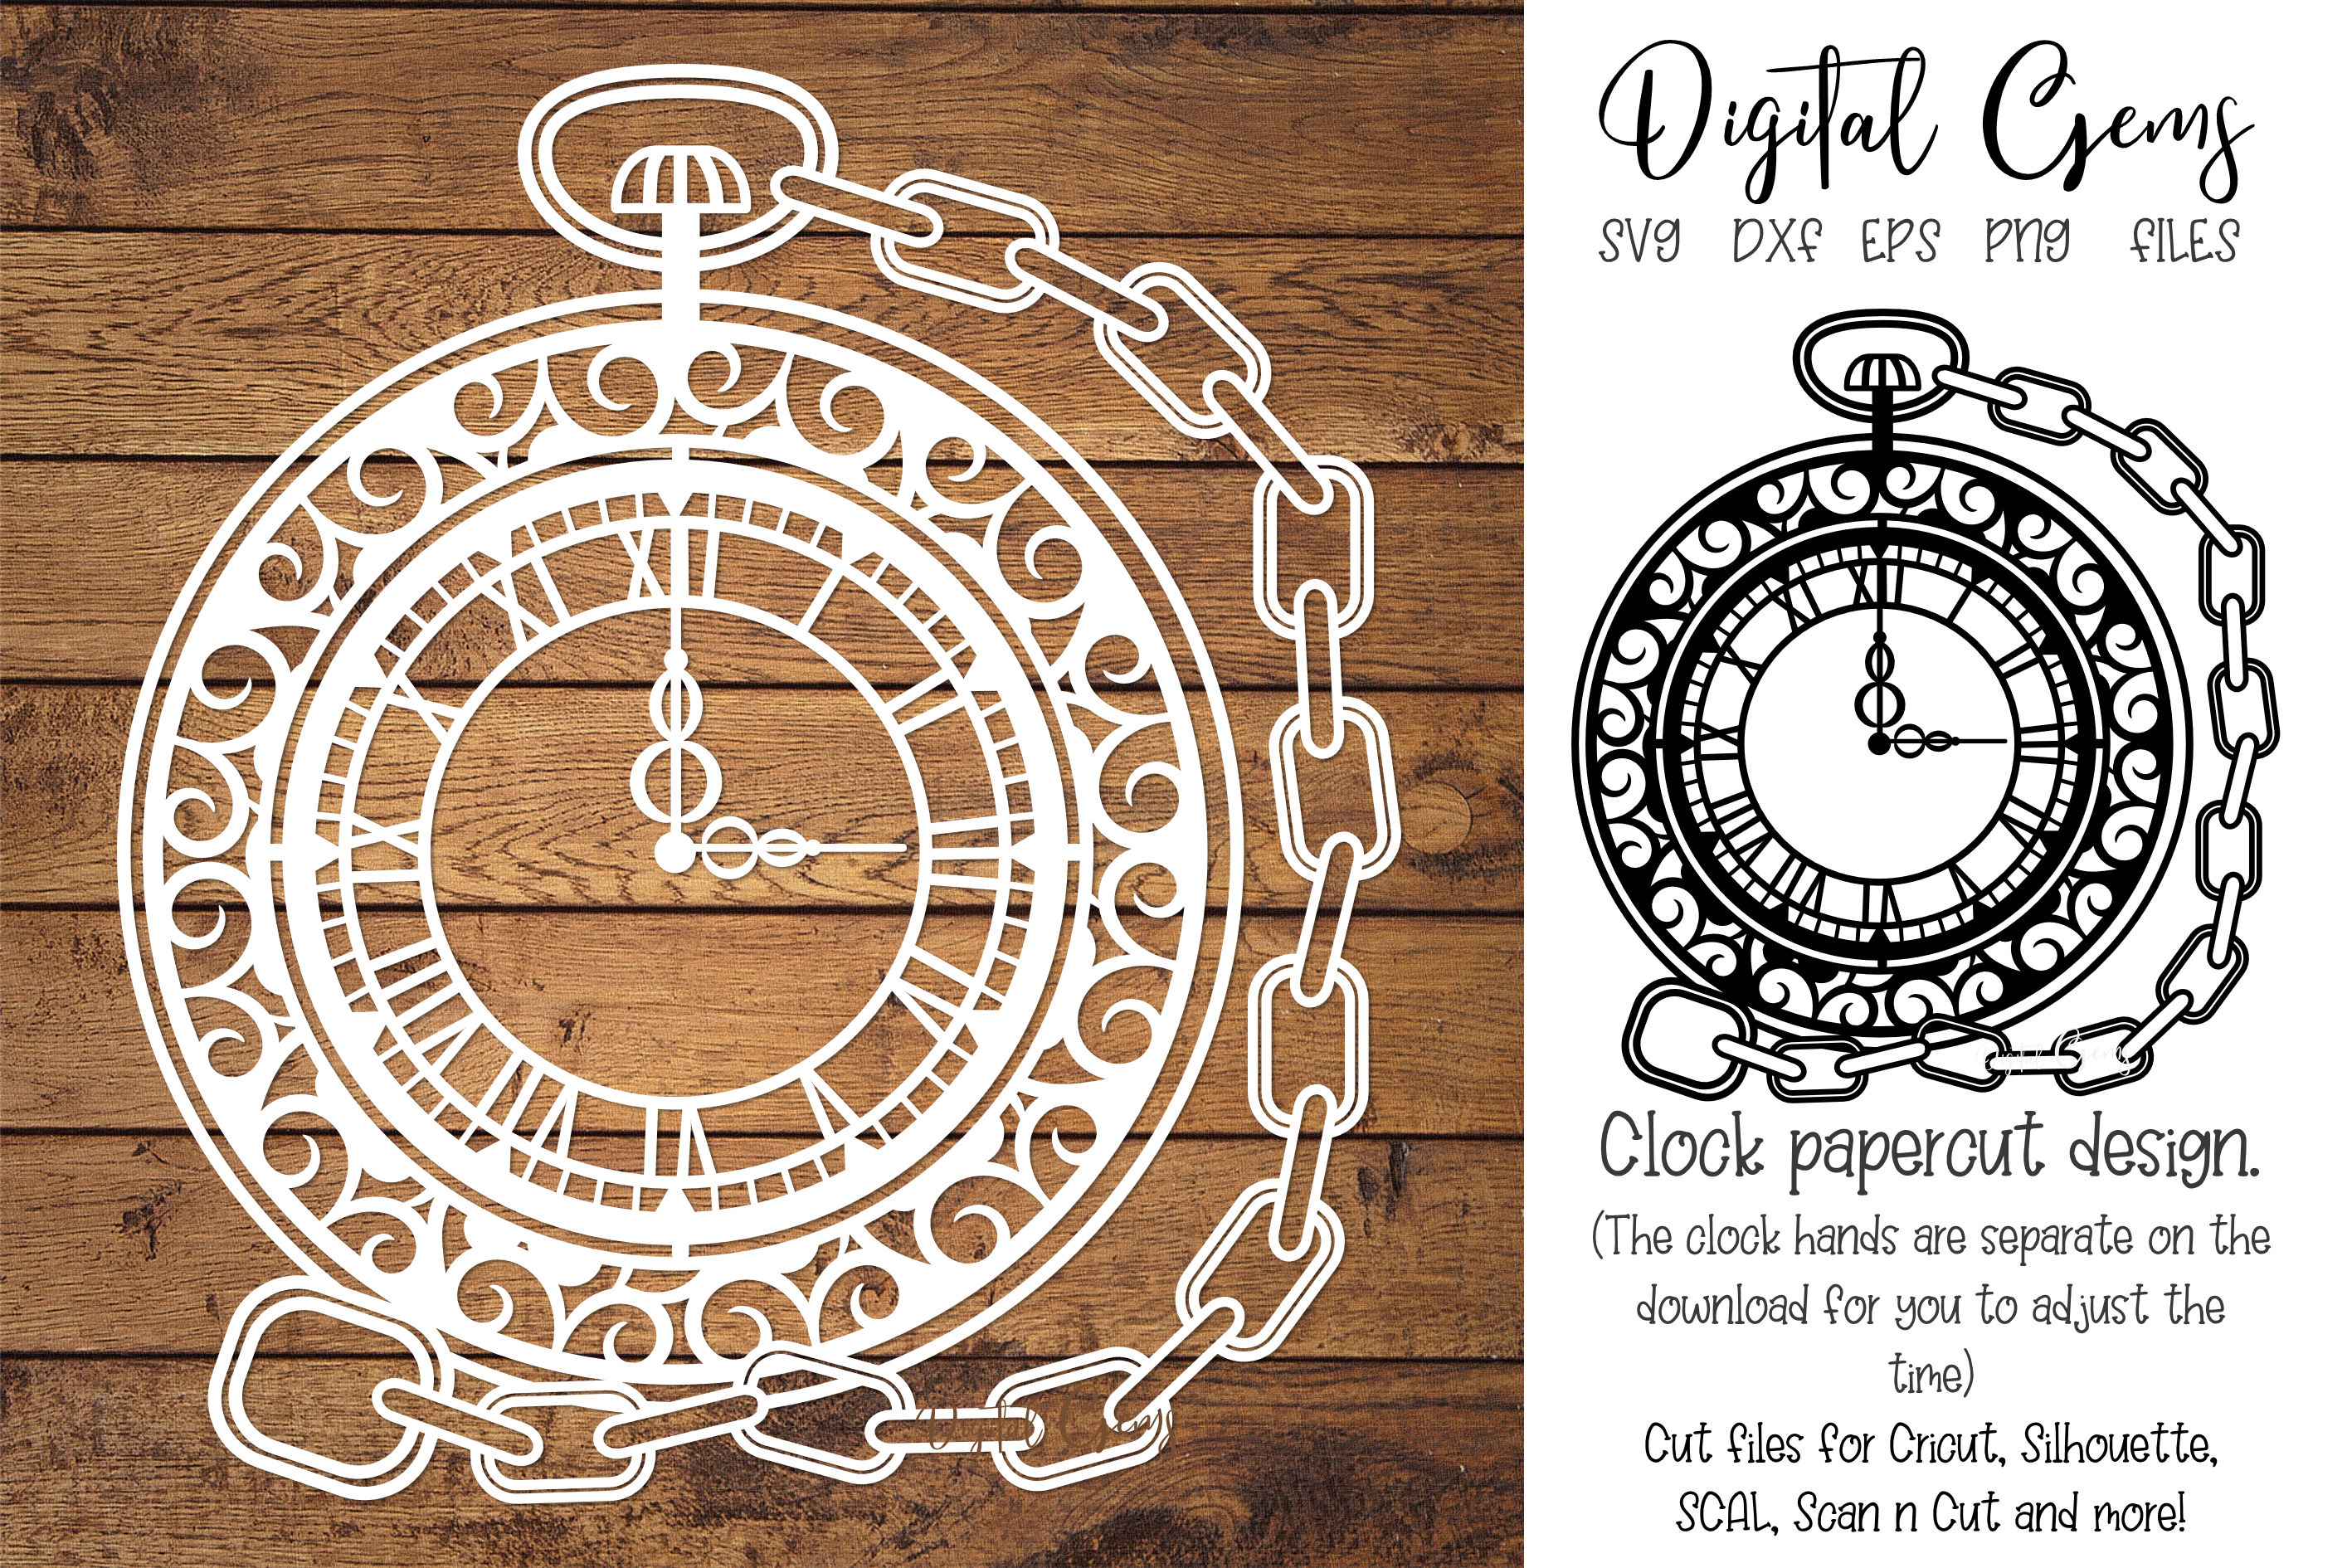 Pocket watch papercut design SVG / EPS / DXF / PNG Files example image 1